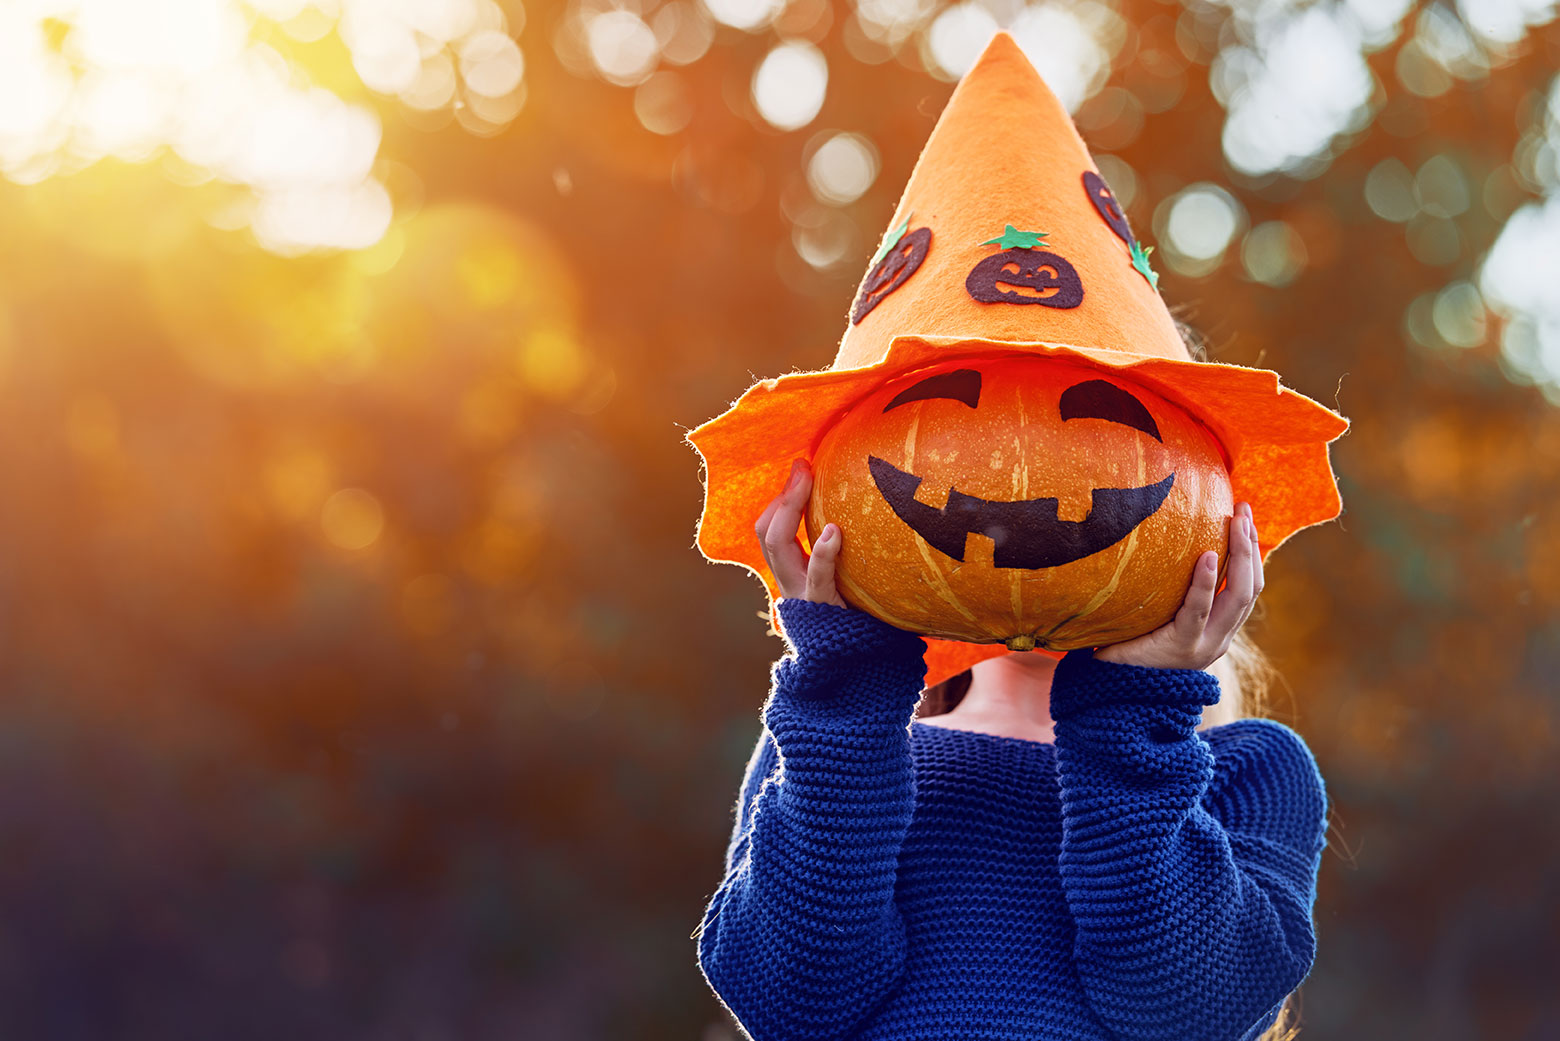 Child holds a decorated pumpkin up in front of their face.